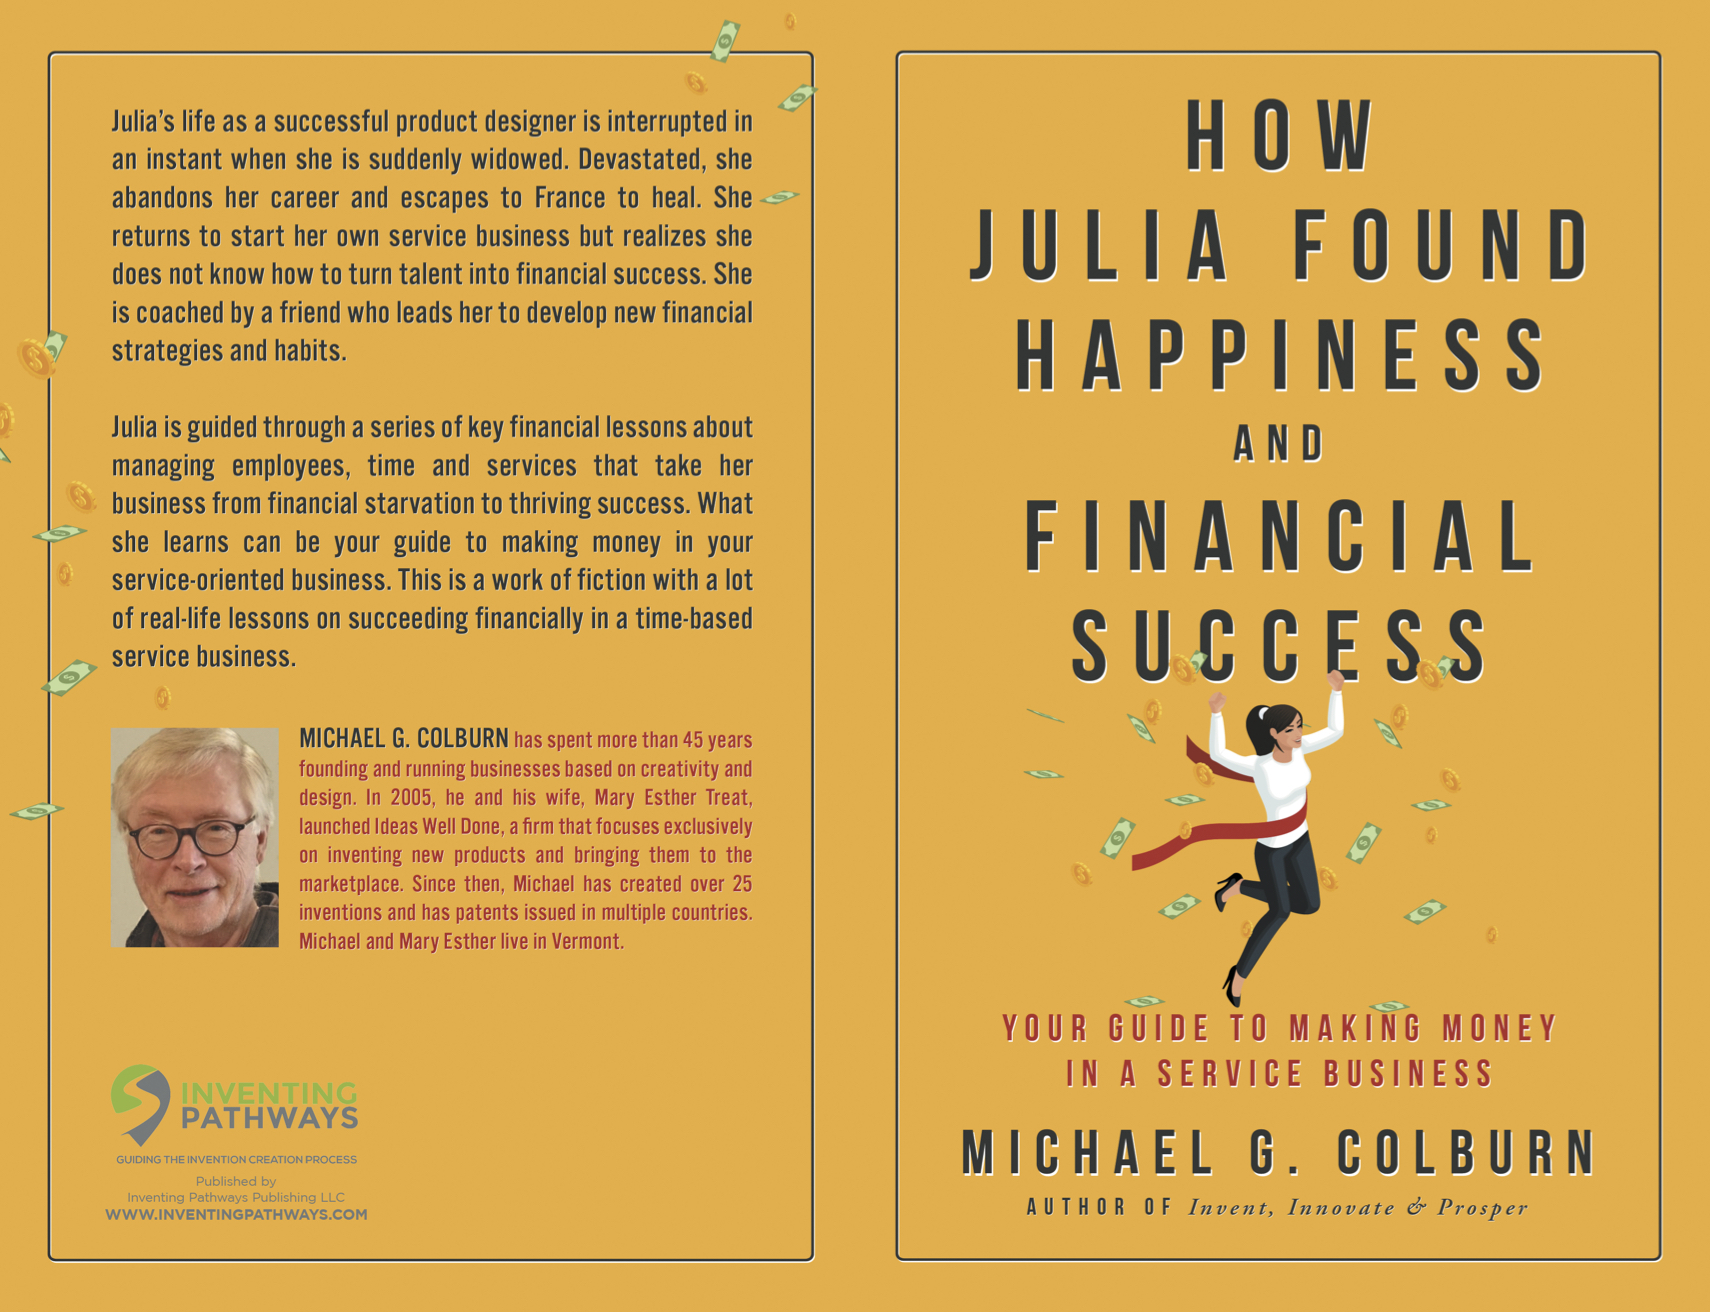 How Julia Found Happiness and Financial Success